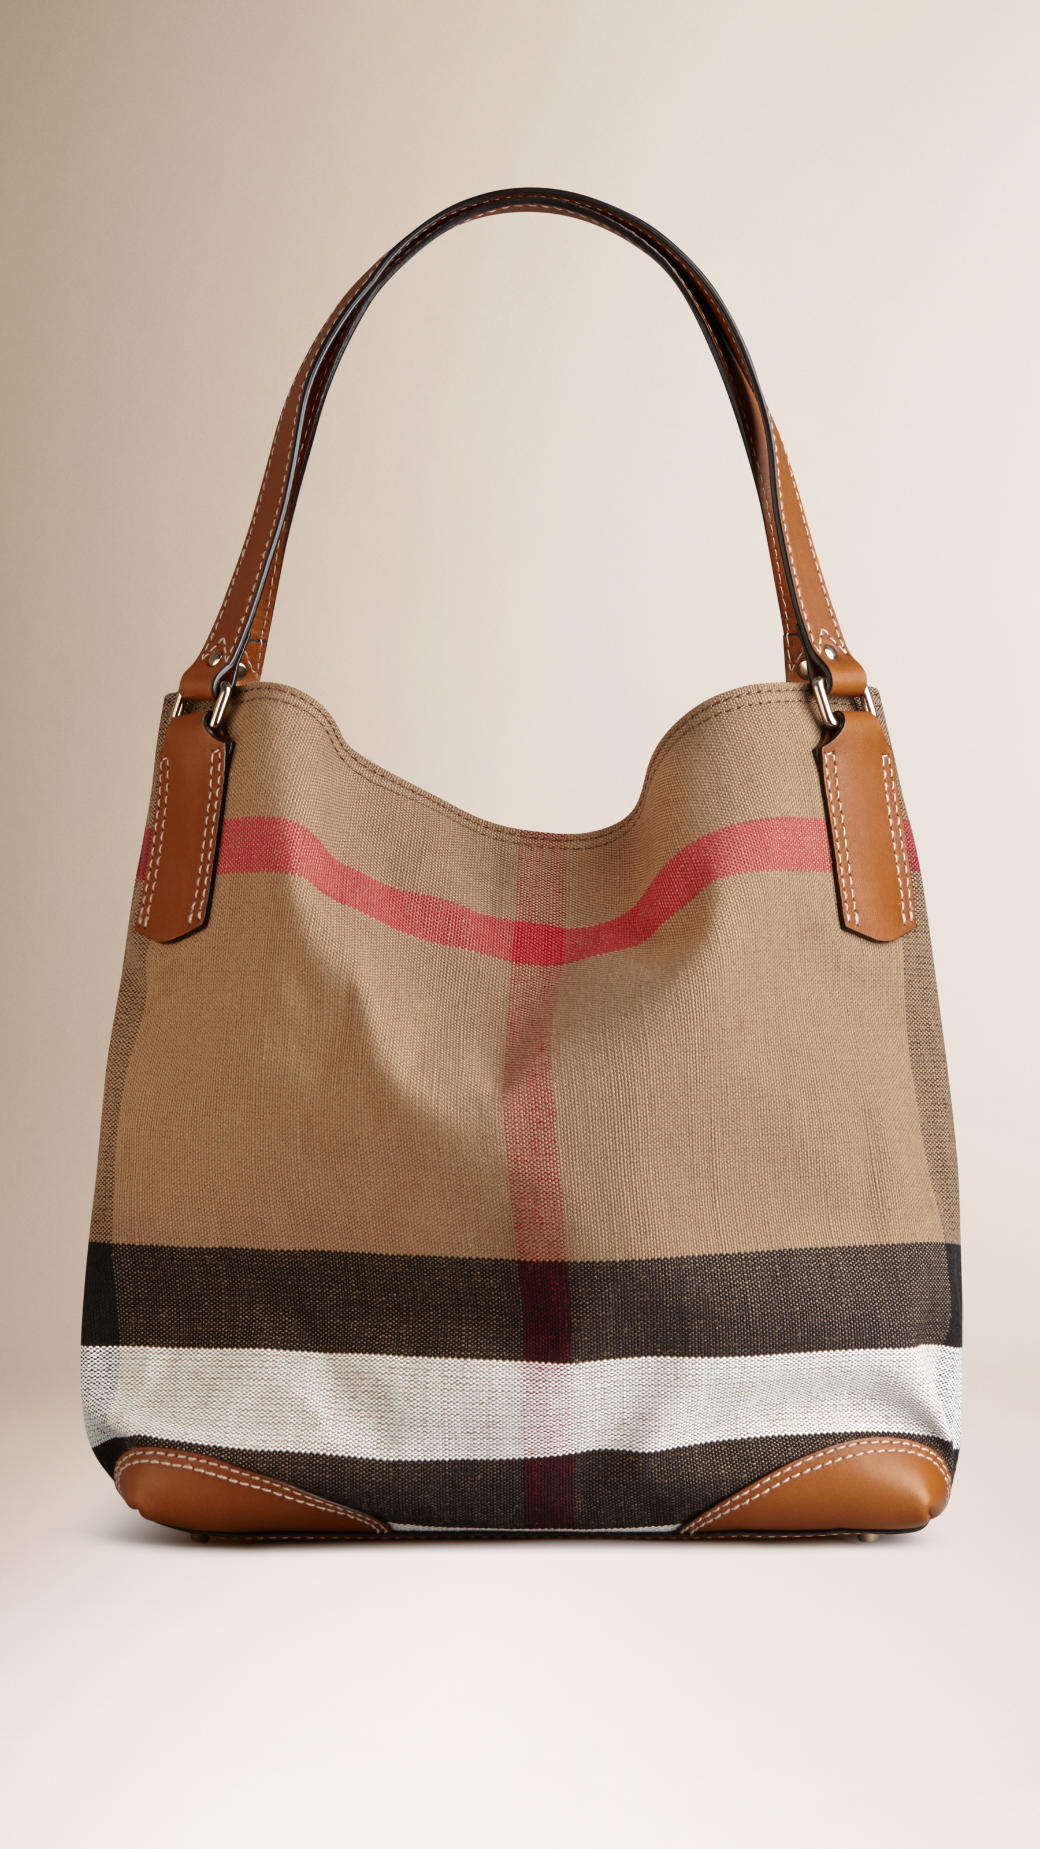 Lyst - Burberry Medium Canvas Check Tote Bag in Brown 5510ba23cd